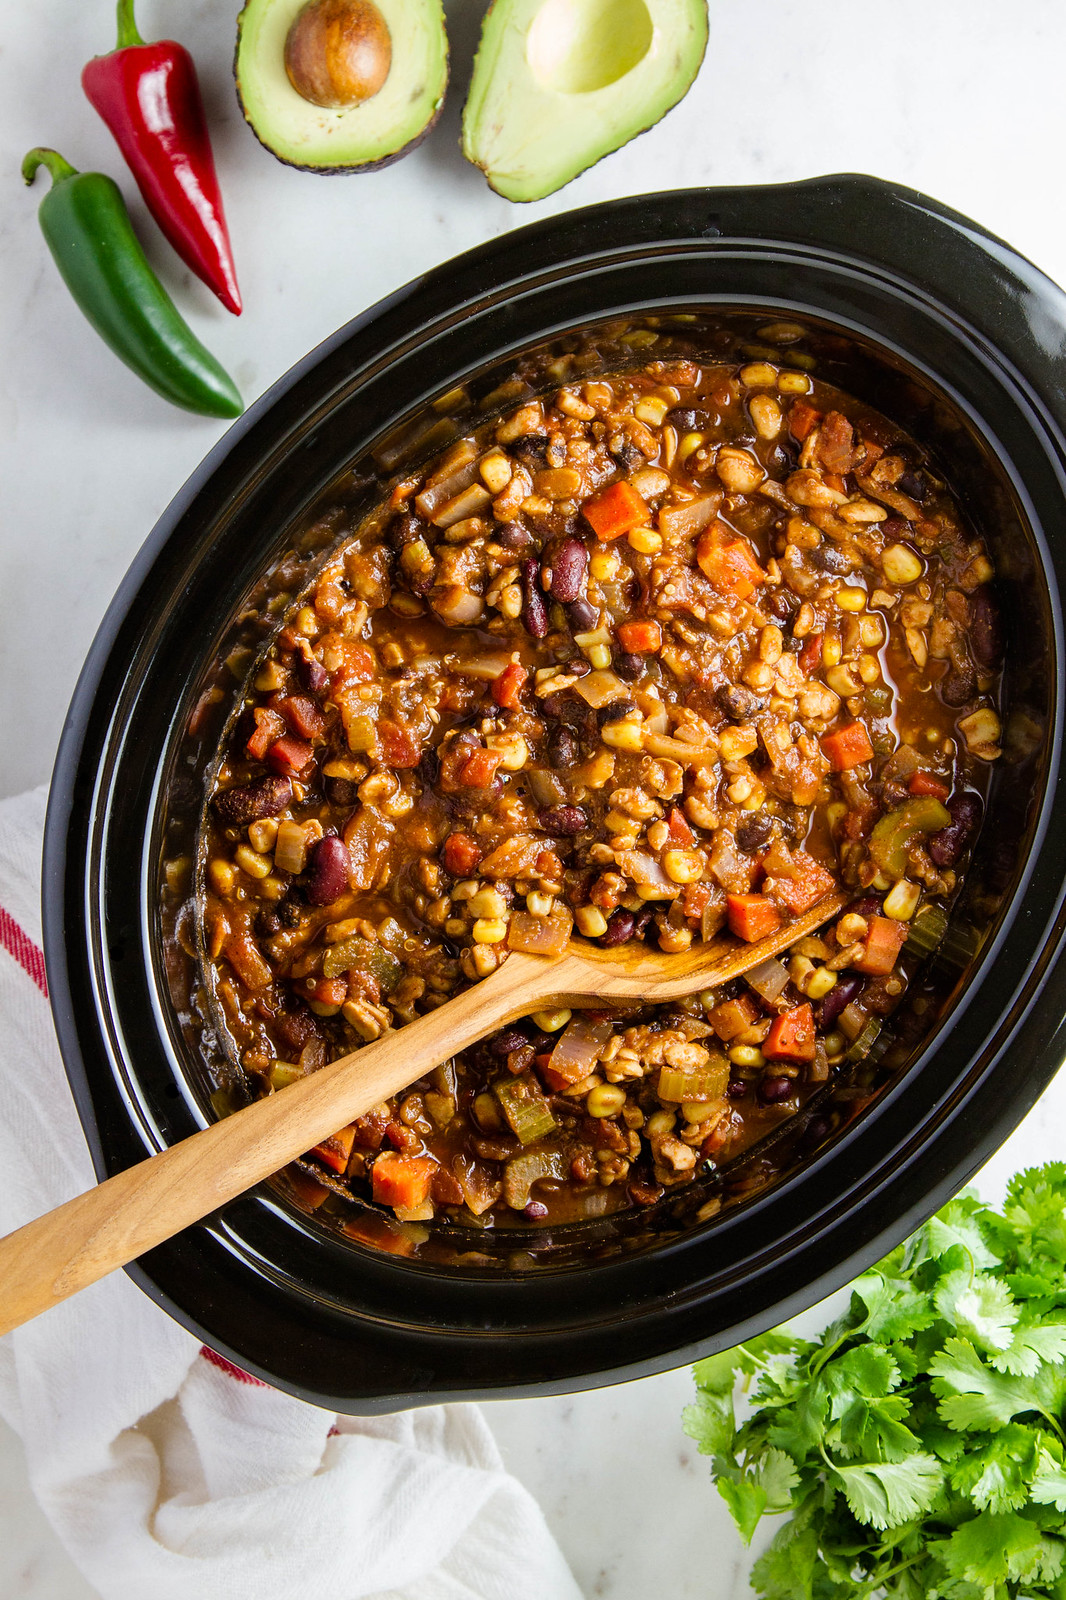 EASY VEGETABLE CHILI